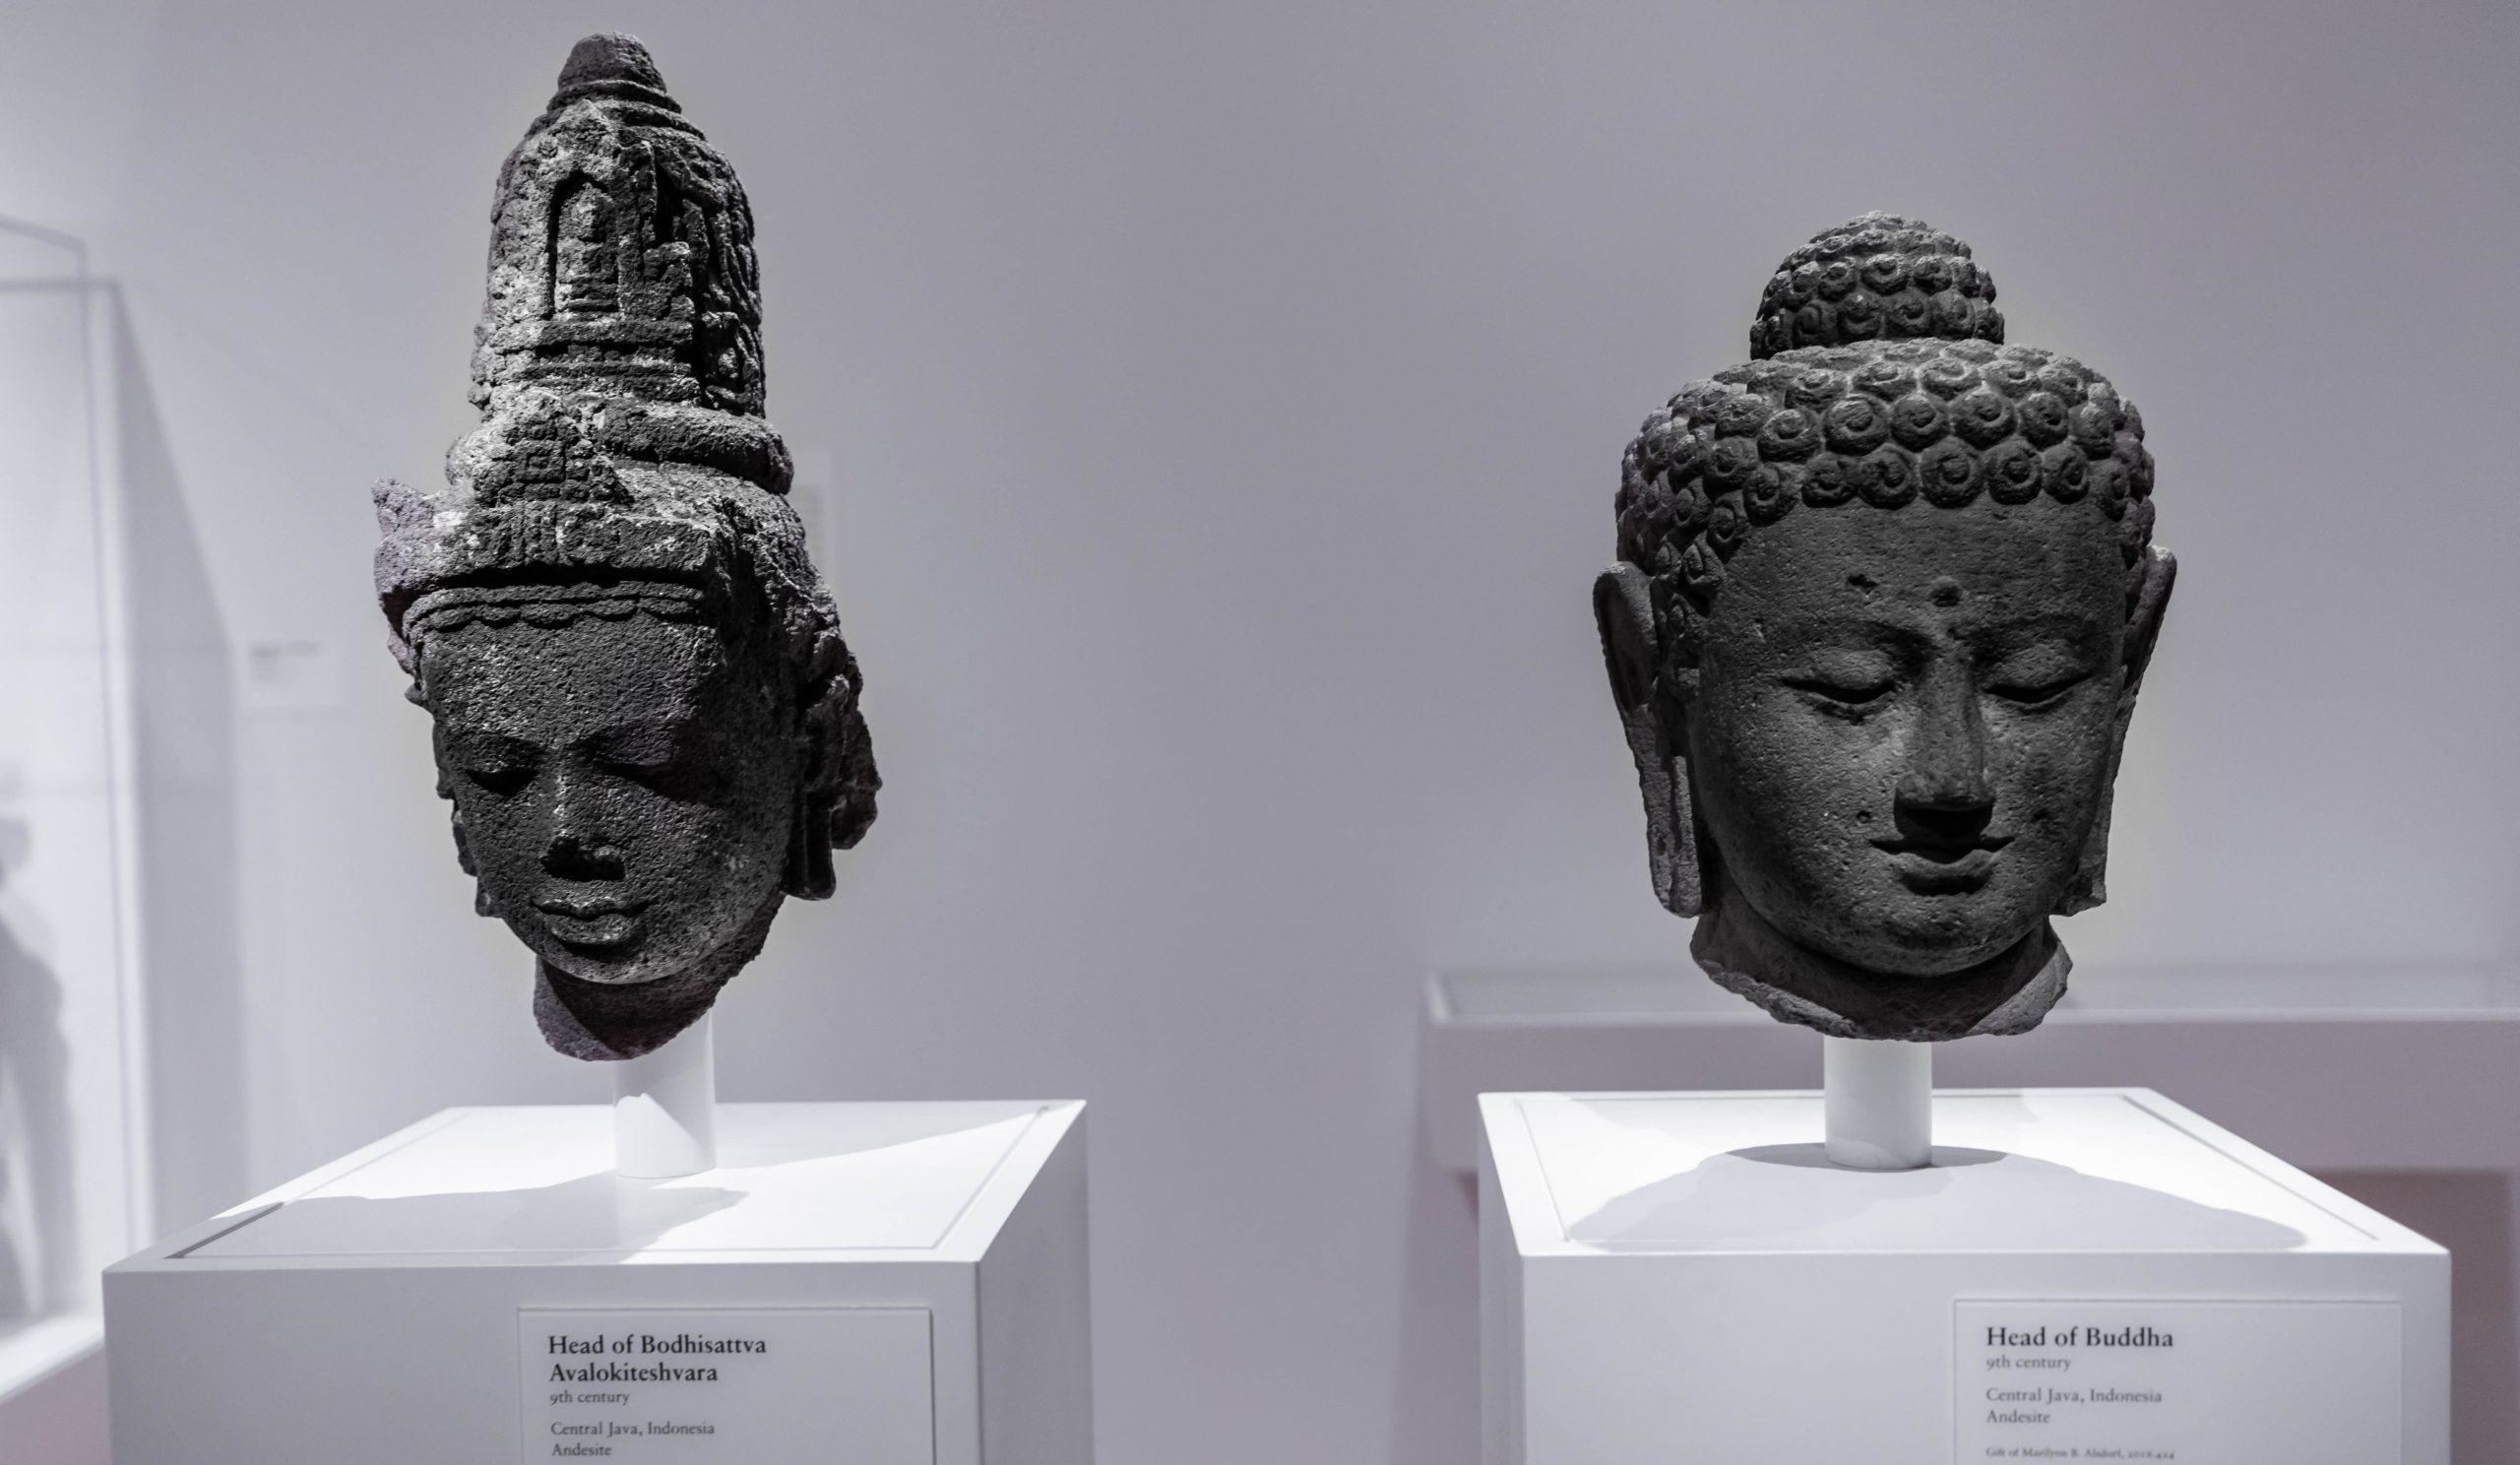 Stone Statues of Buddha The Art Institute of Chicago in Chicago, Illinois by Annie Fairfax